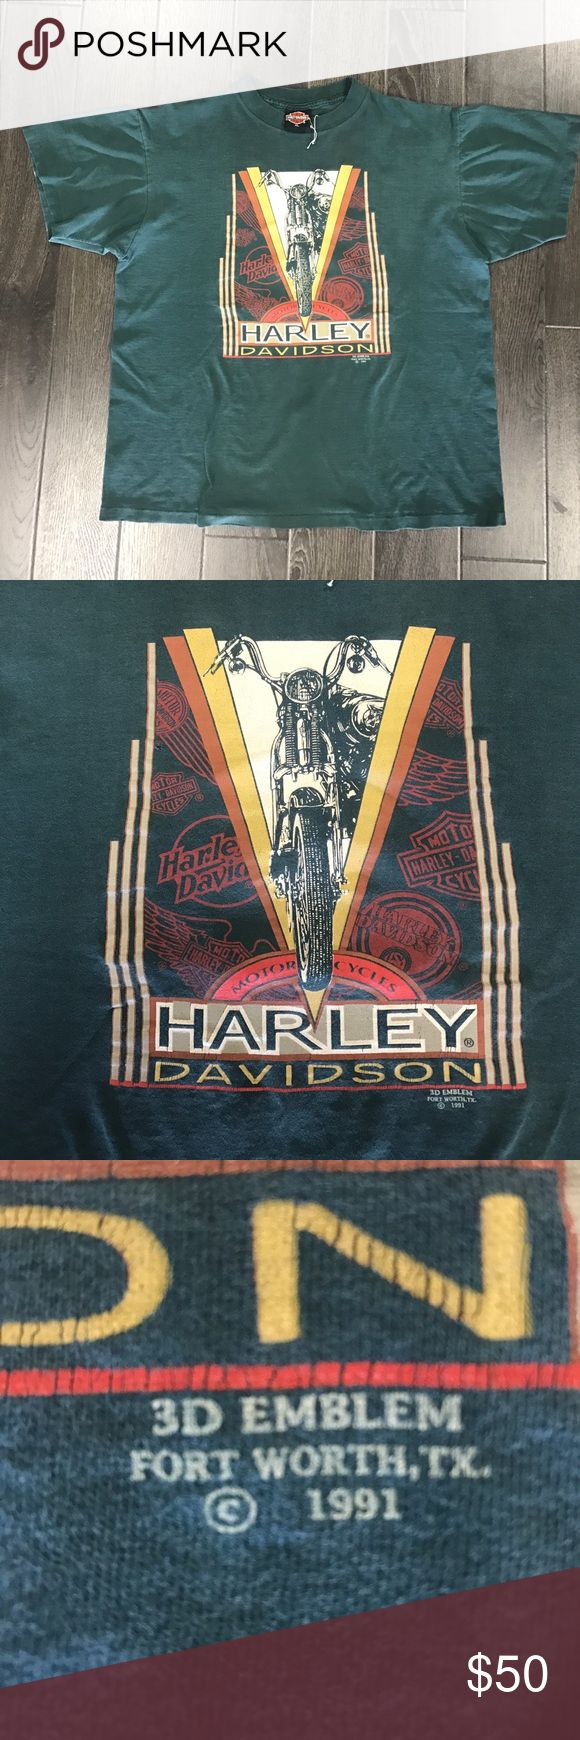 Rare 1991 Vintage Harley Davidson T-Shirt Rare 1991 Vintage Harley Davidson T-Shirt. Size XL but fits more like a L. Accepts Trades & Offers. DM or comment for questions. Check out our Instagram for more info: @gritcityacesclub Harley-Davidson Shirts Tees - Short Sleeve